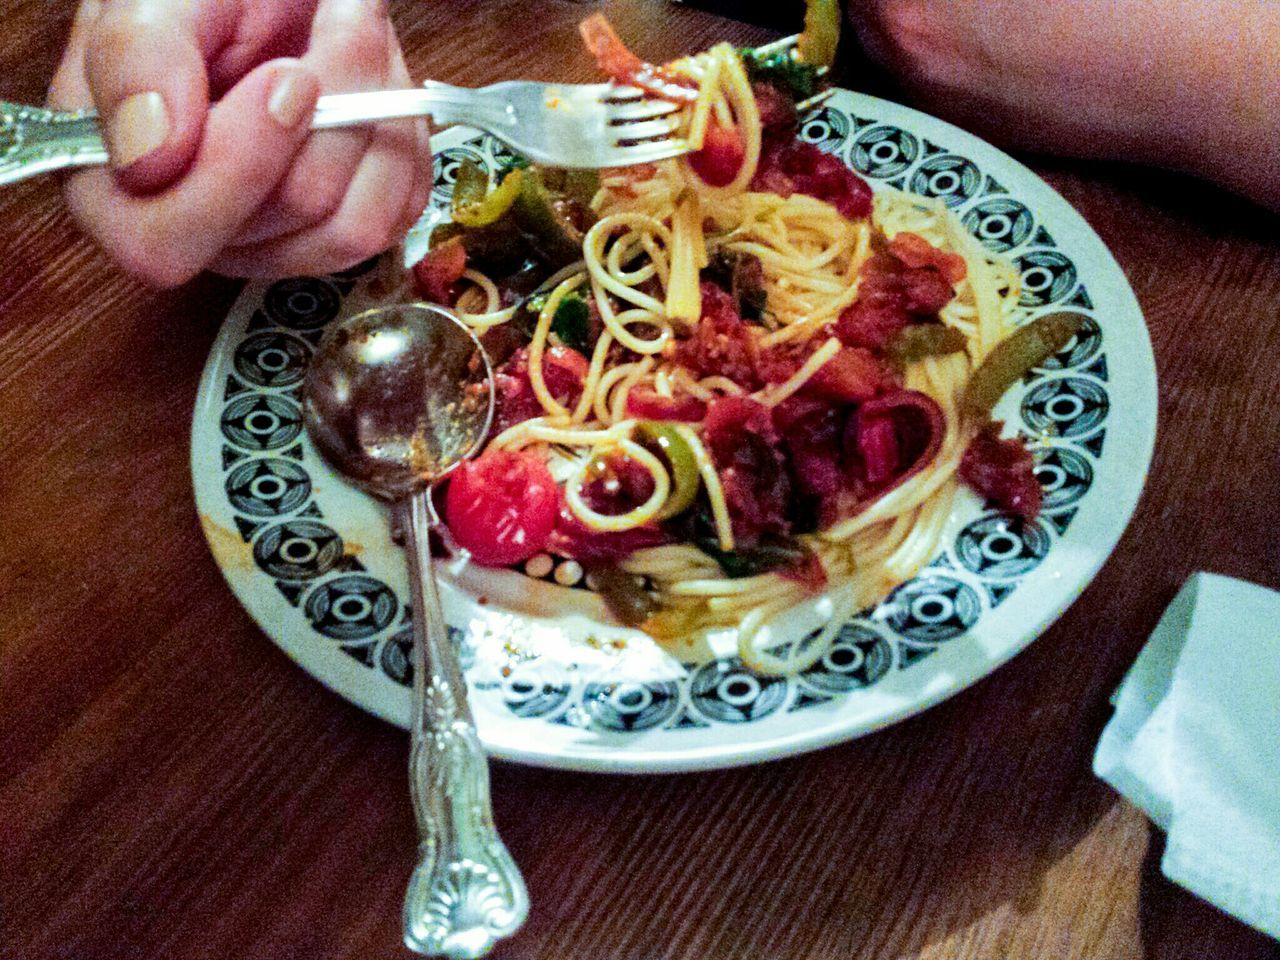 Food Foodporn Food Porn Foodphotography Spagetti Vegetables Dining Eating Tea Time Plate Colour Of Life Edible  Yum Scrumptious Italian Food Vintage Plate Fork Spoon Vintage Cherry Tomatoes